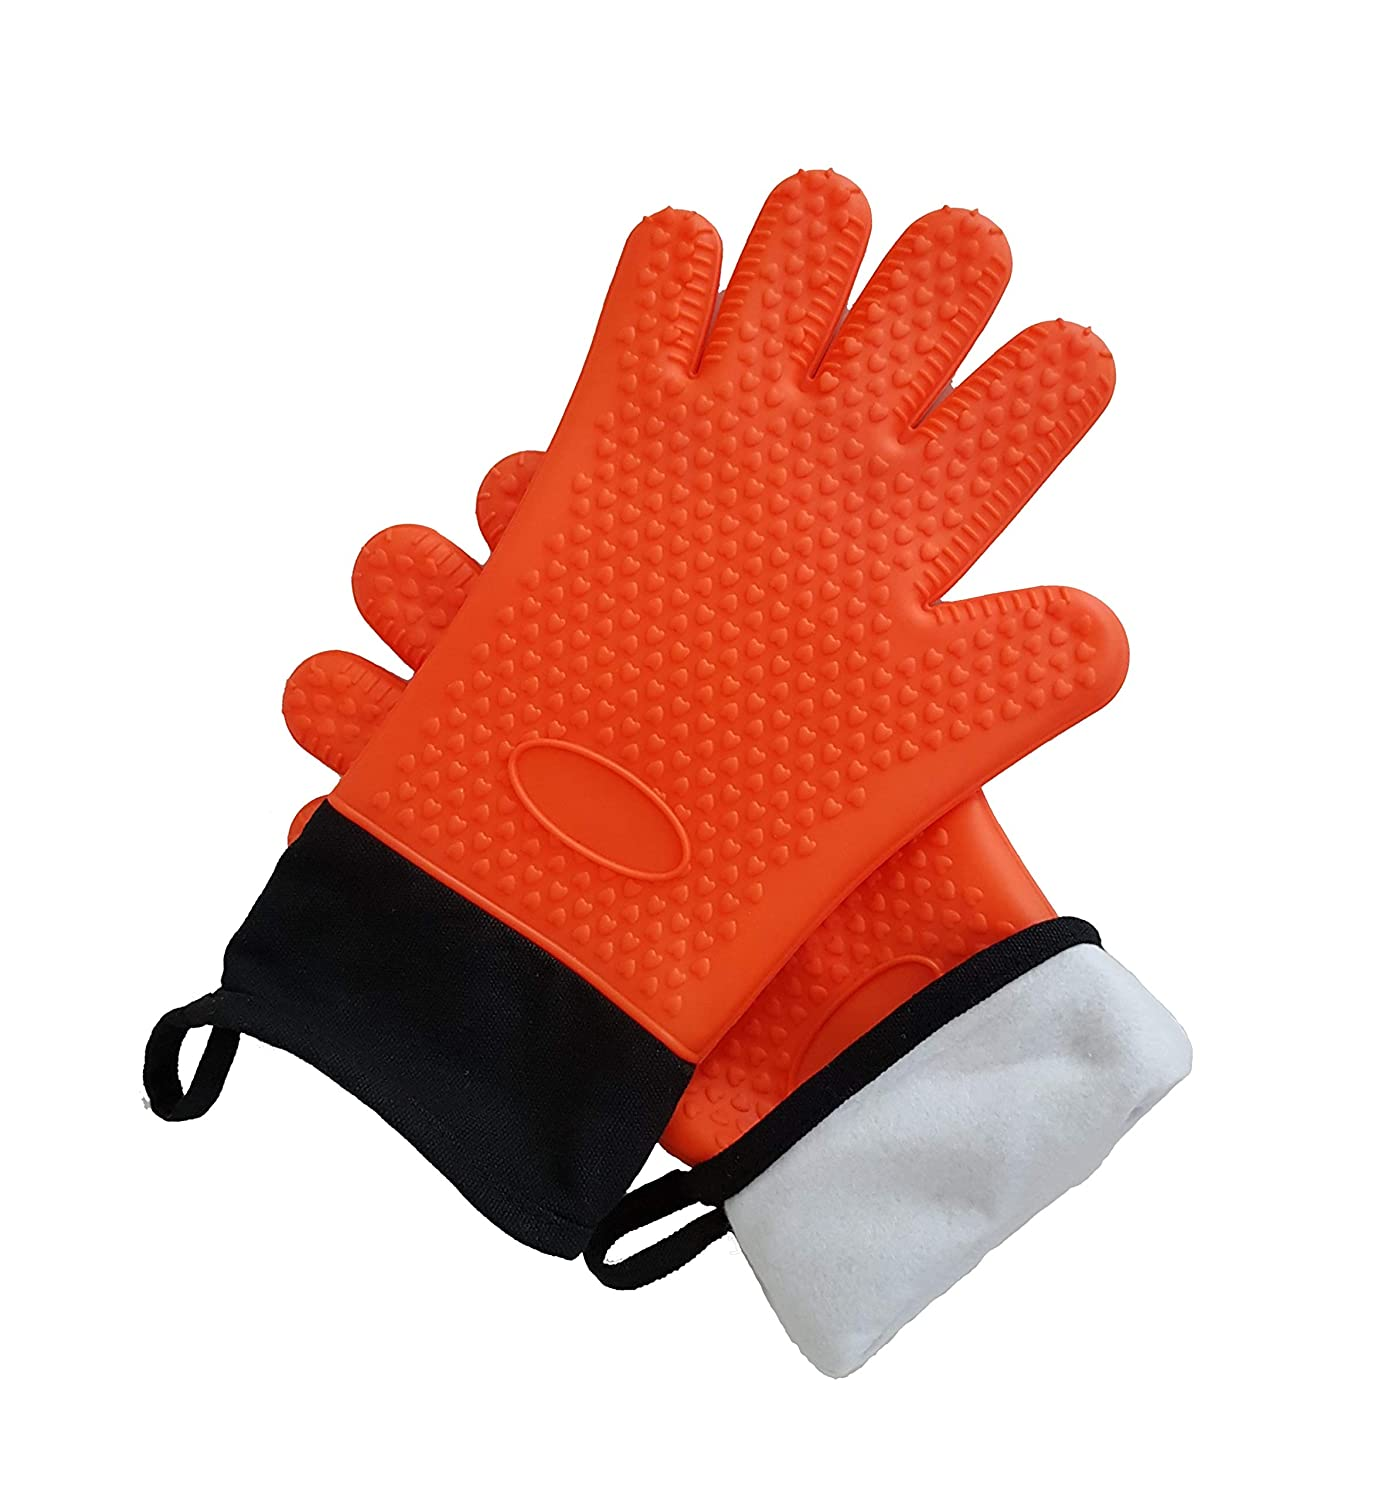 Youth'm YouthM Kitchen Mitts BBQ Gloves high Temperature Resistant Washable Grill golves and Pot Holder with Internal Cotton Lining Extra Long Pair (Orange)